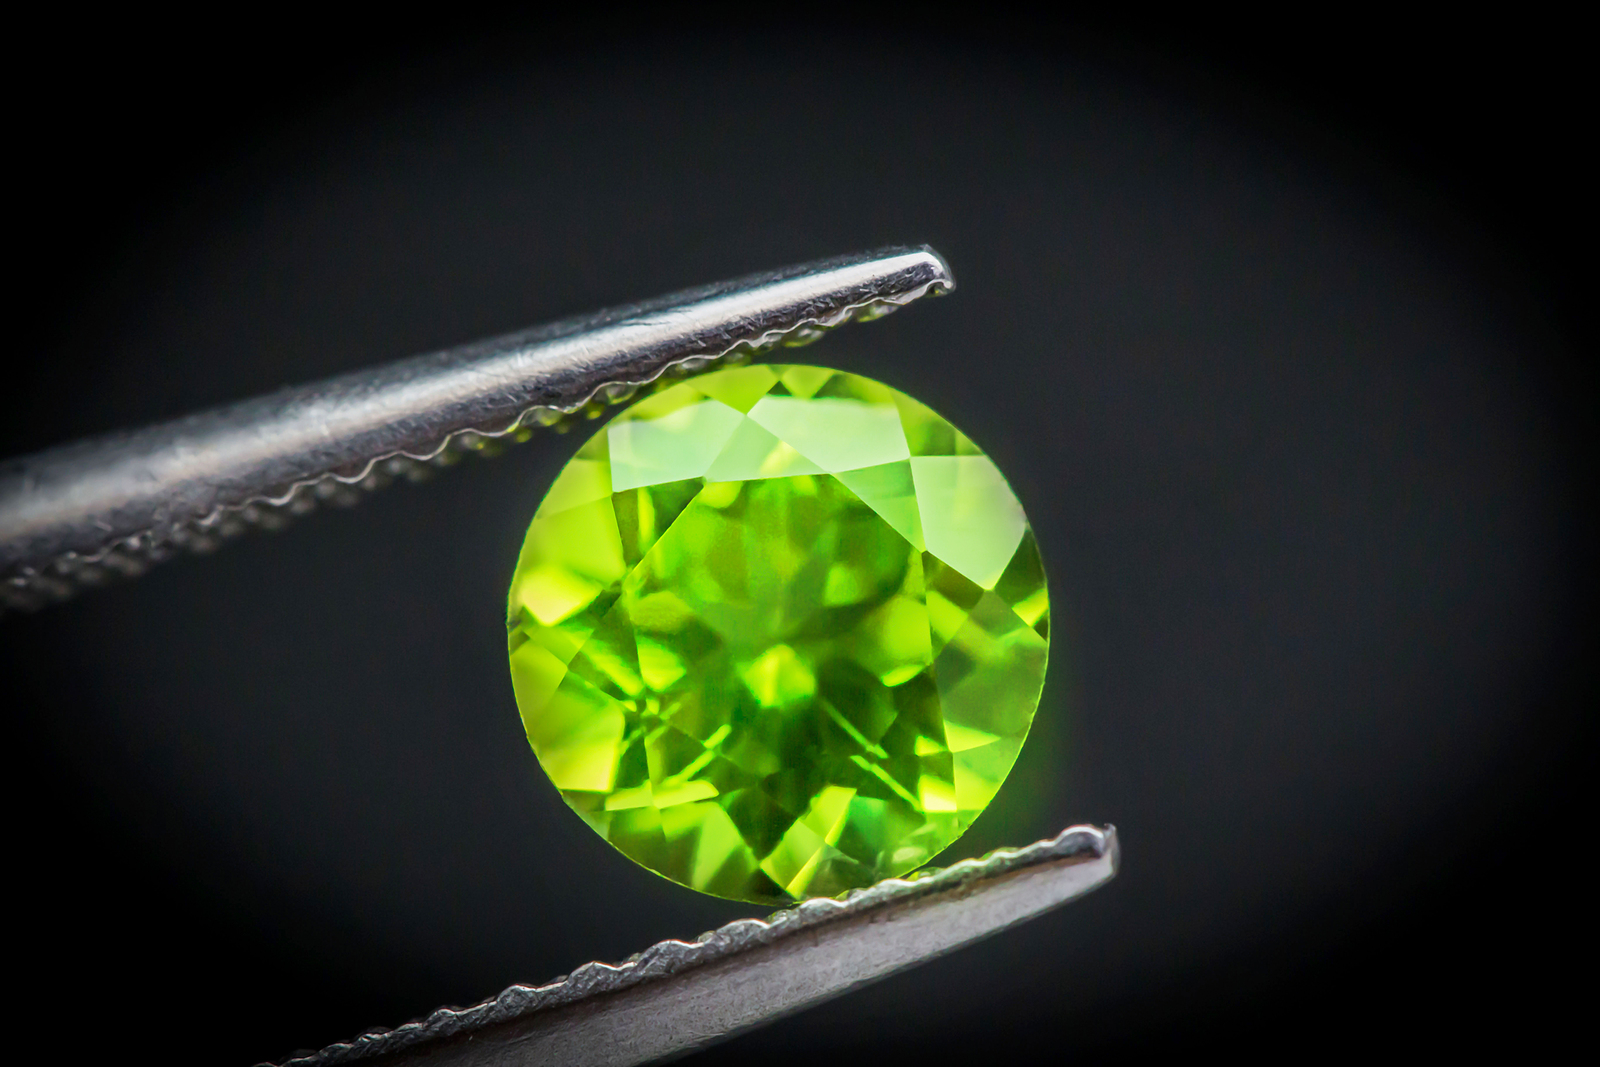 Fame, Facts, & History of the Stunning Green Precious Gemstone, Tsavorite by Southwest Originals 505-363-7150 a